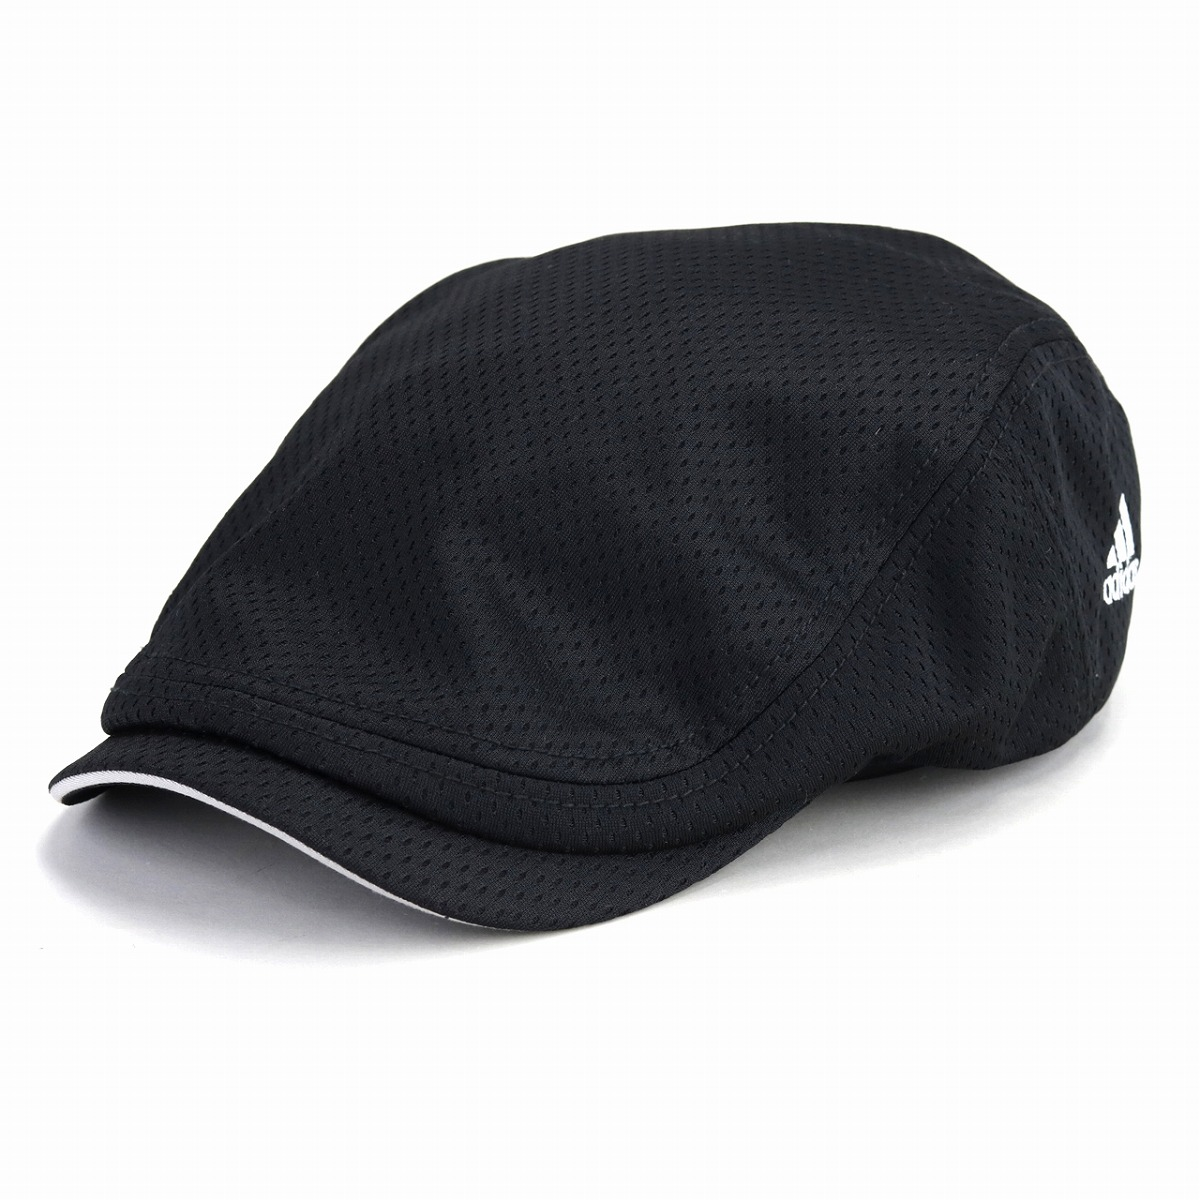 Adidas hunting cap cool hat sports mesh hunting cap moisture absorption  fast-dry hunting cap ... 466c551b61e